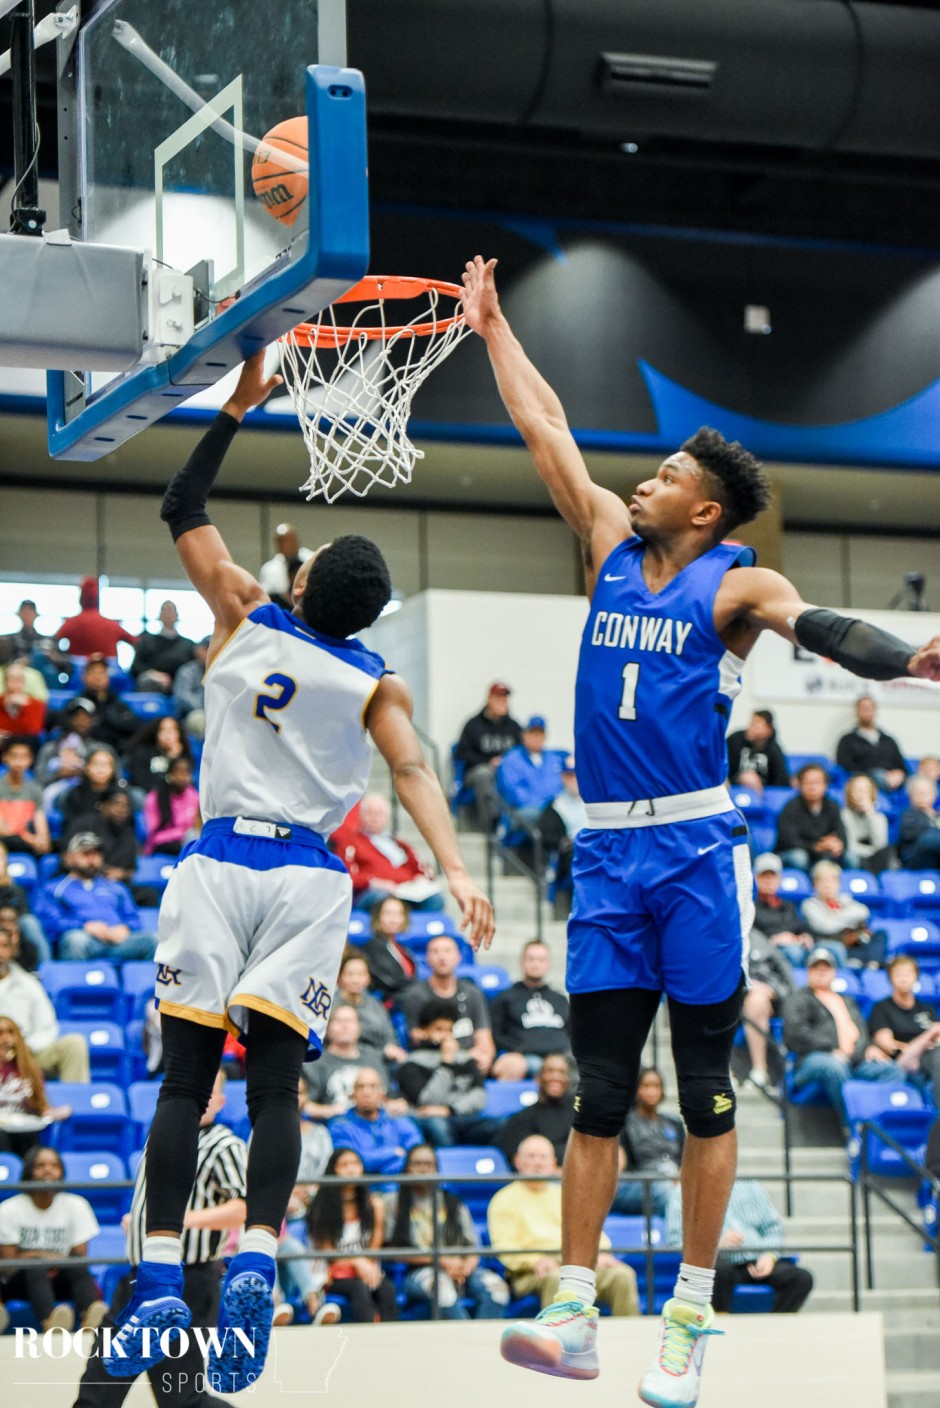 NLR_conway_bball_2020(i)-48